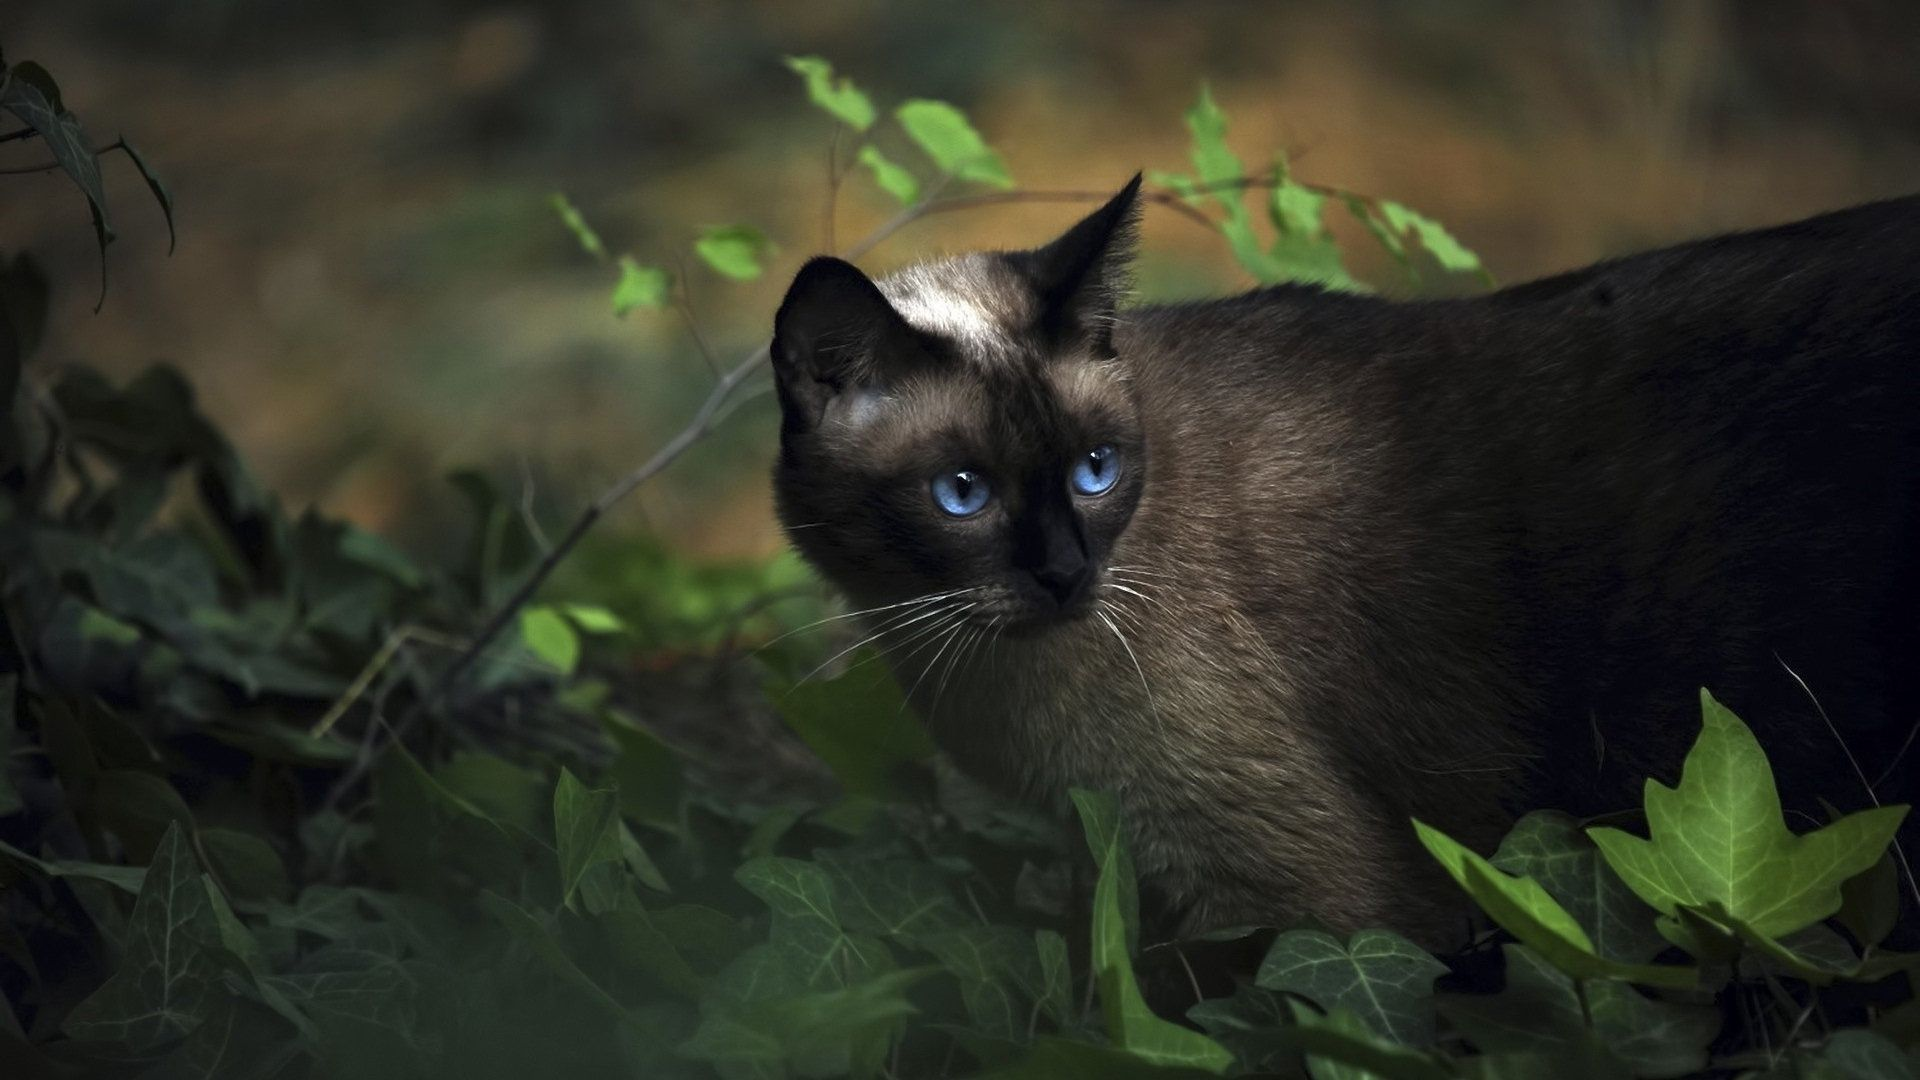 Dark Siamese cat (With images) Pets cats, Siamese cats